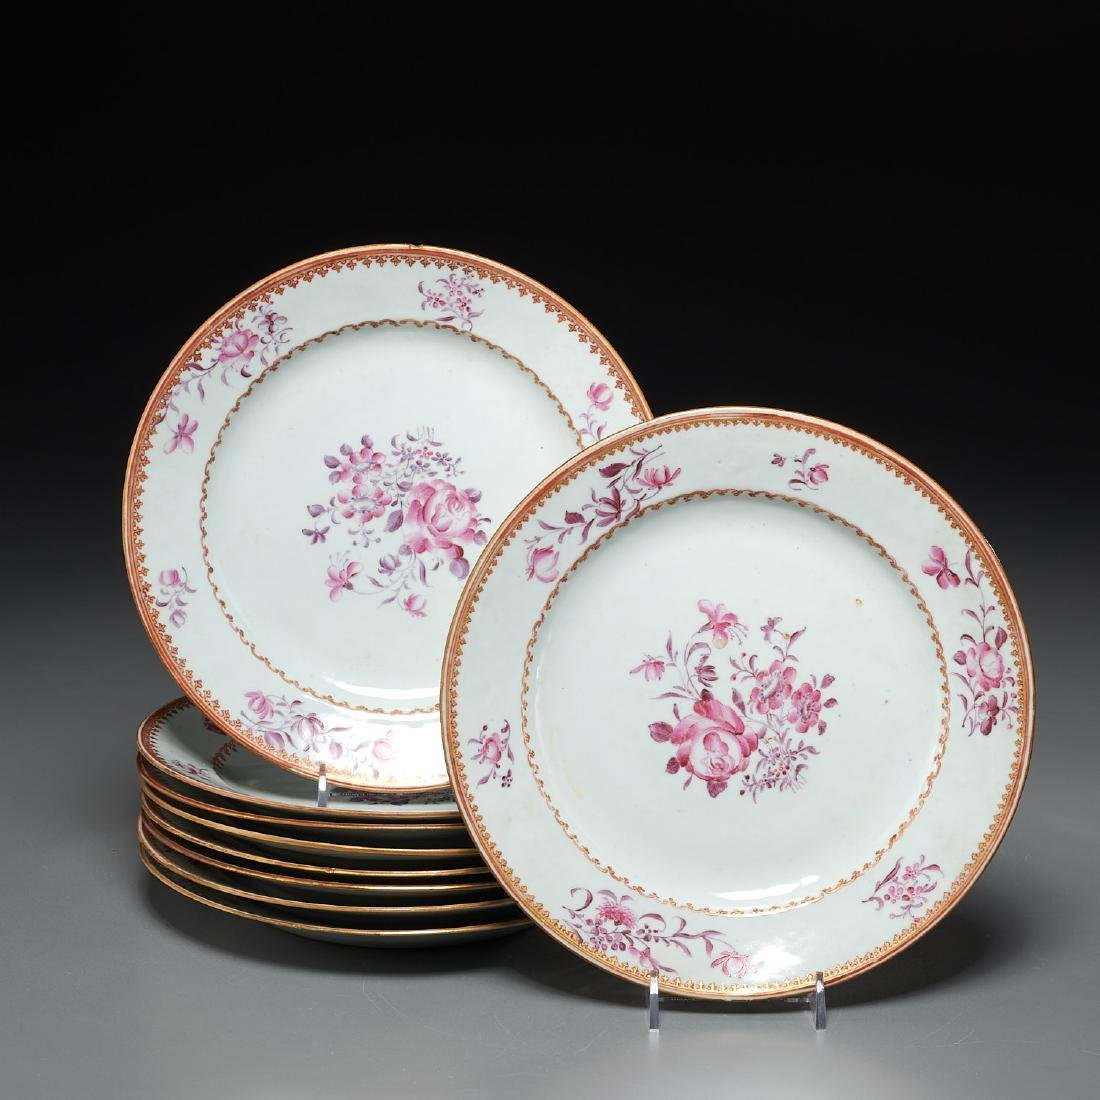 Set Chinese Export hand-painted porcelain plates